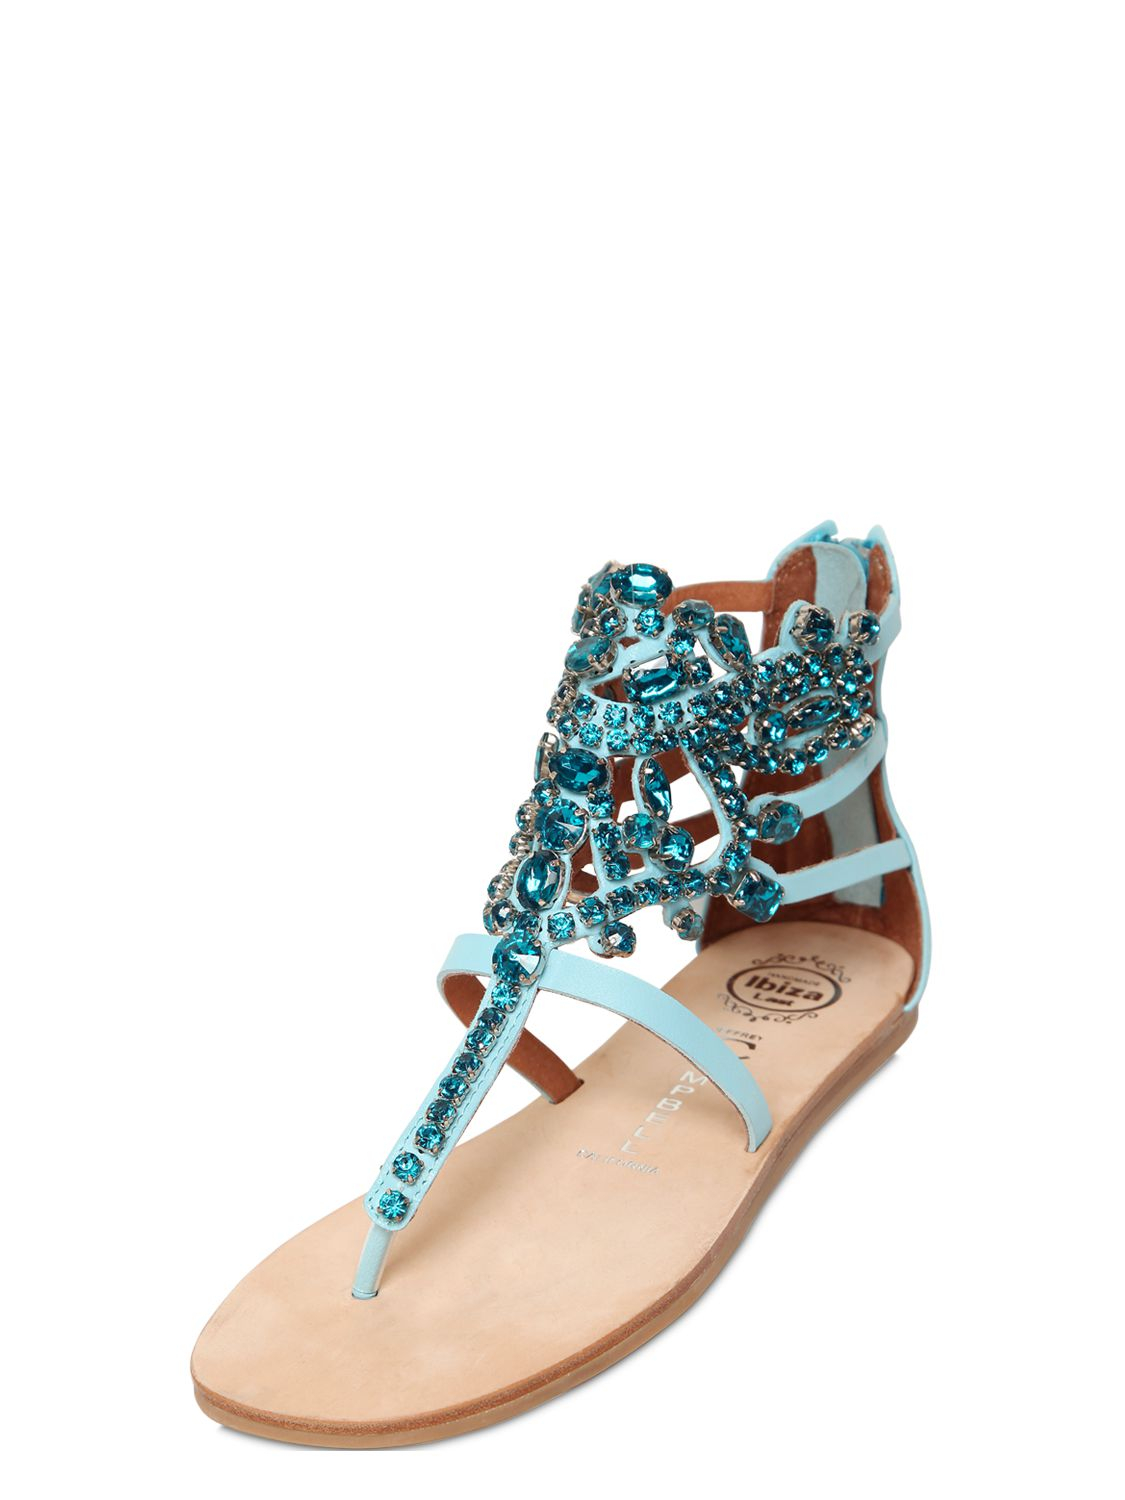 Jeffrey Campbell 10mm Jeweled Leather Sandals In Blue Lyst